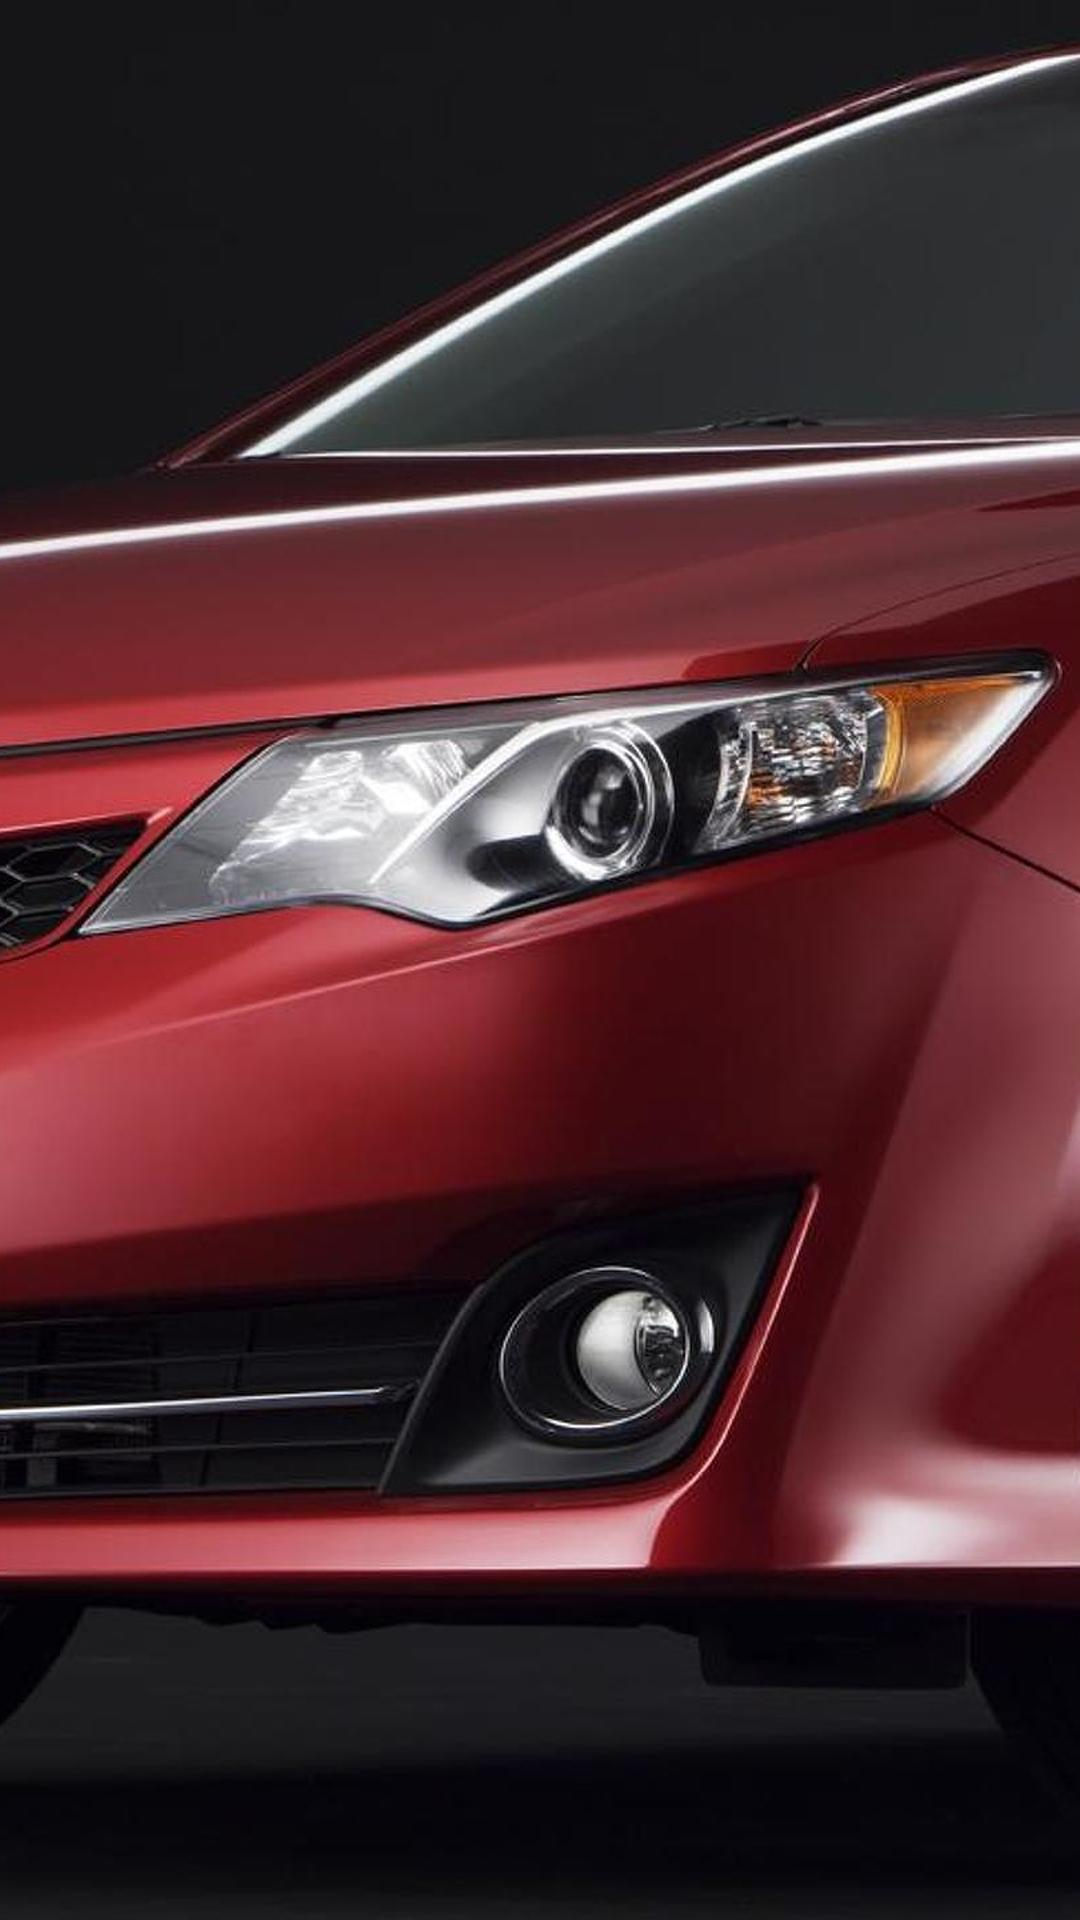 Toyota Camry gets a second teaser image